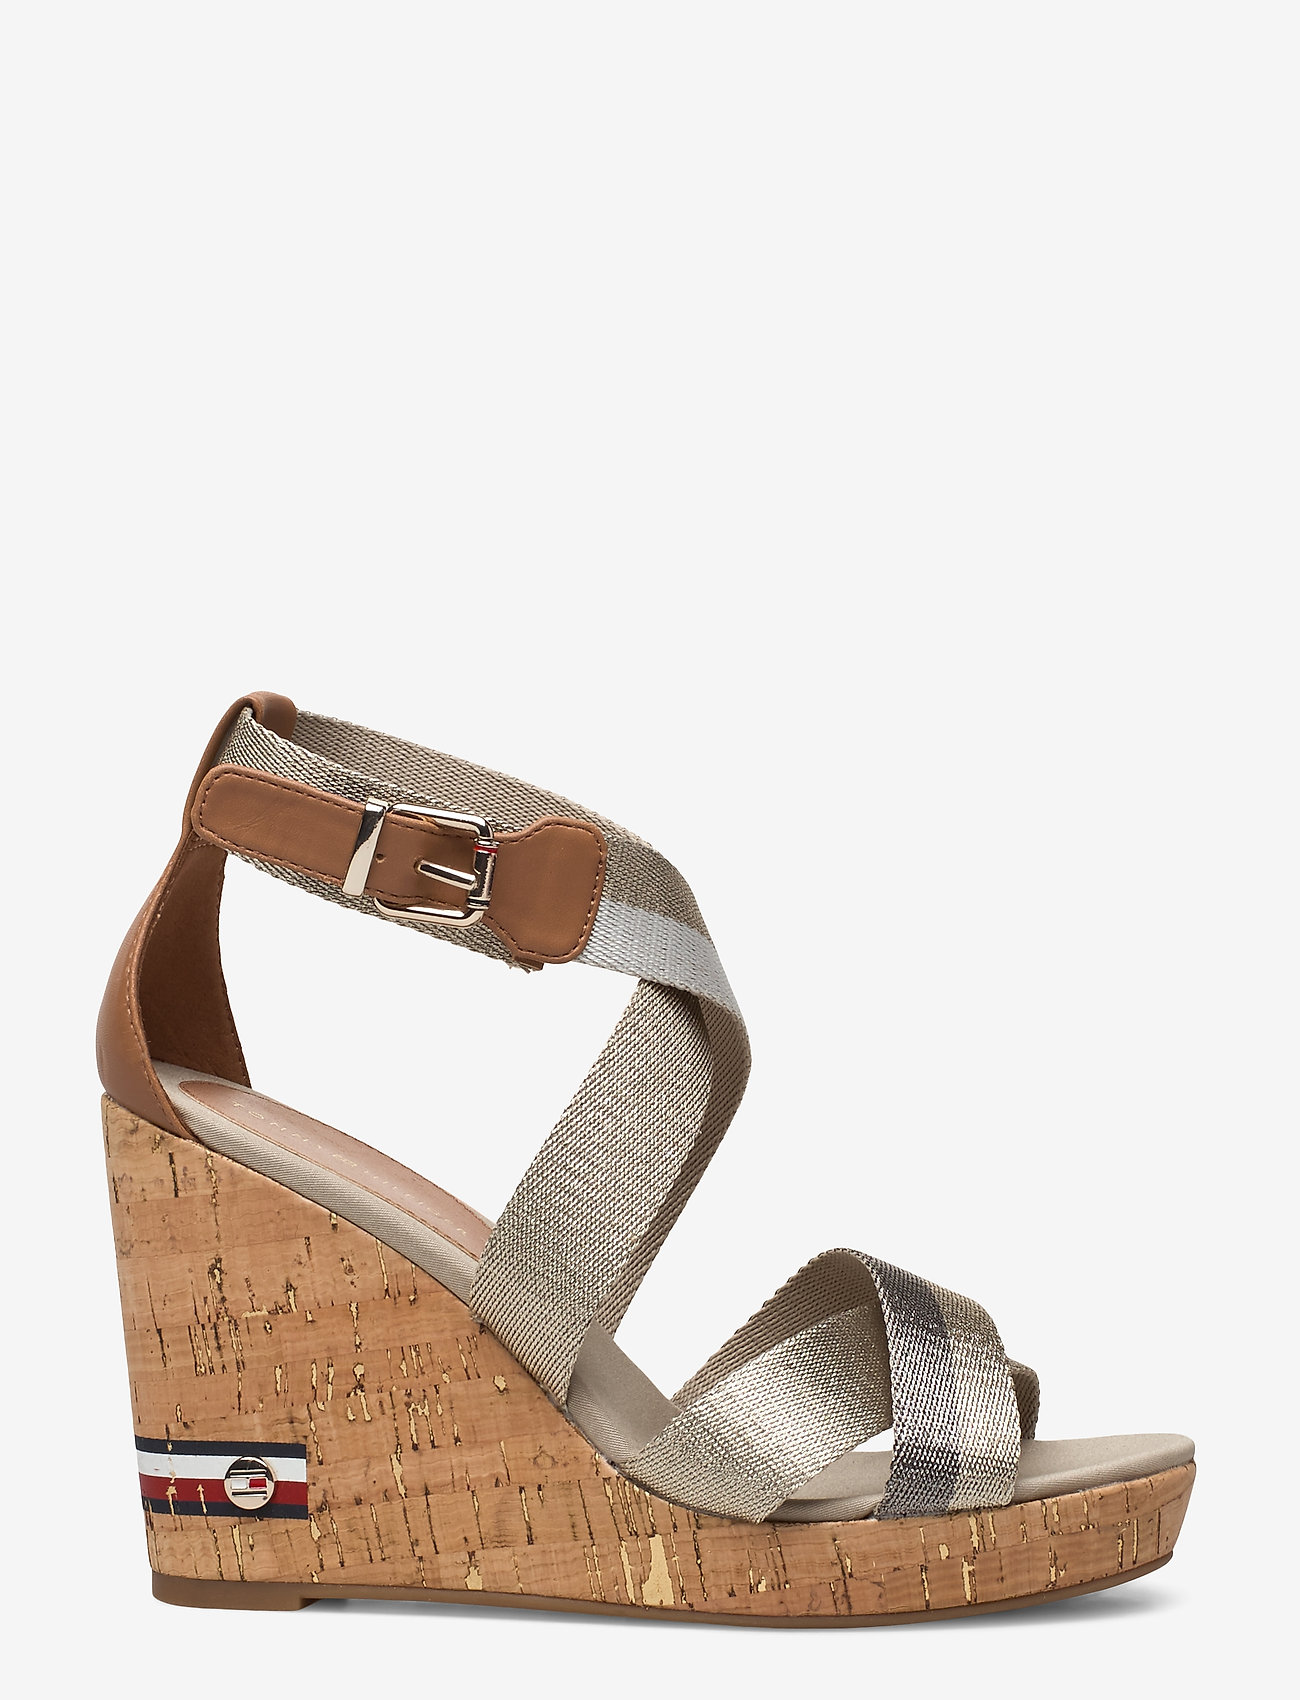 Tommy Hilfiger - CORPORATE TH HIGH WEDGE SANDAL - heeled sandals - stone - 1